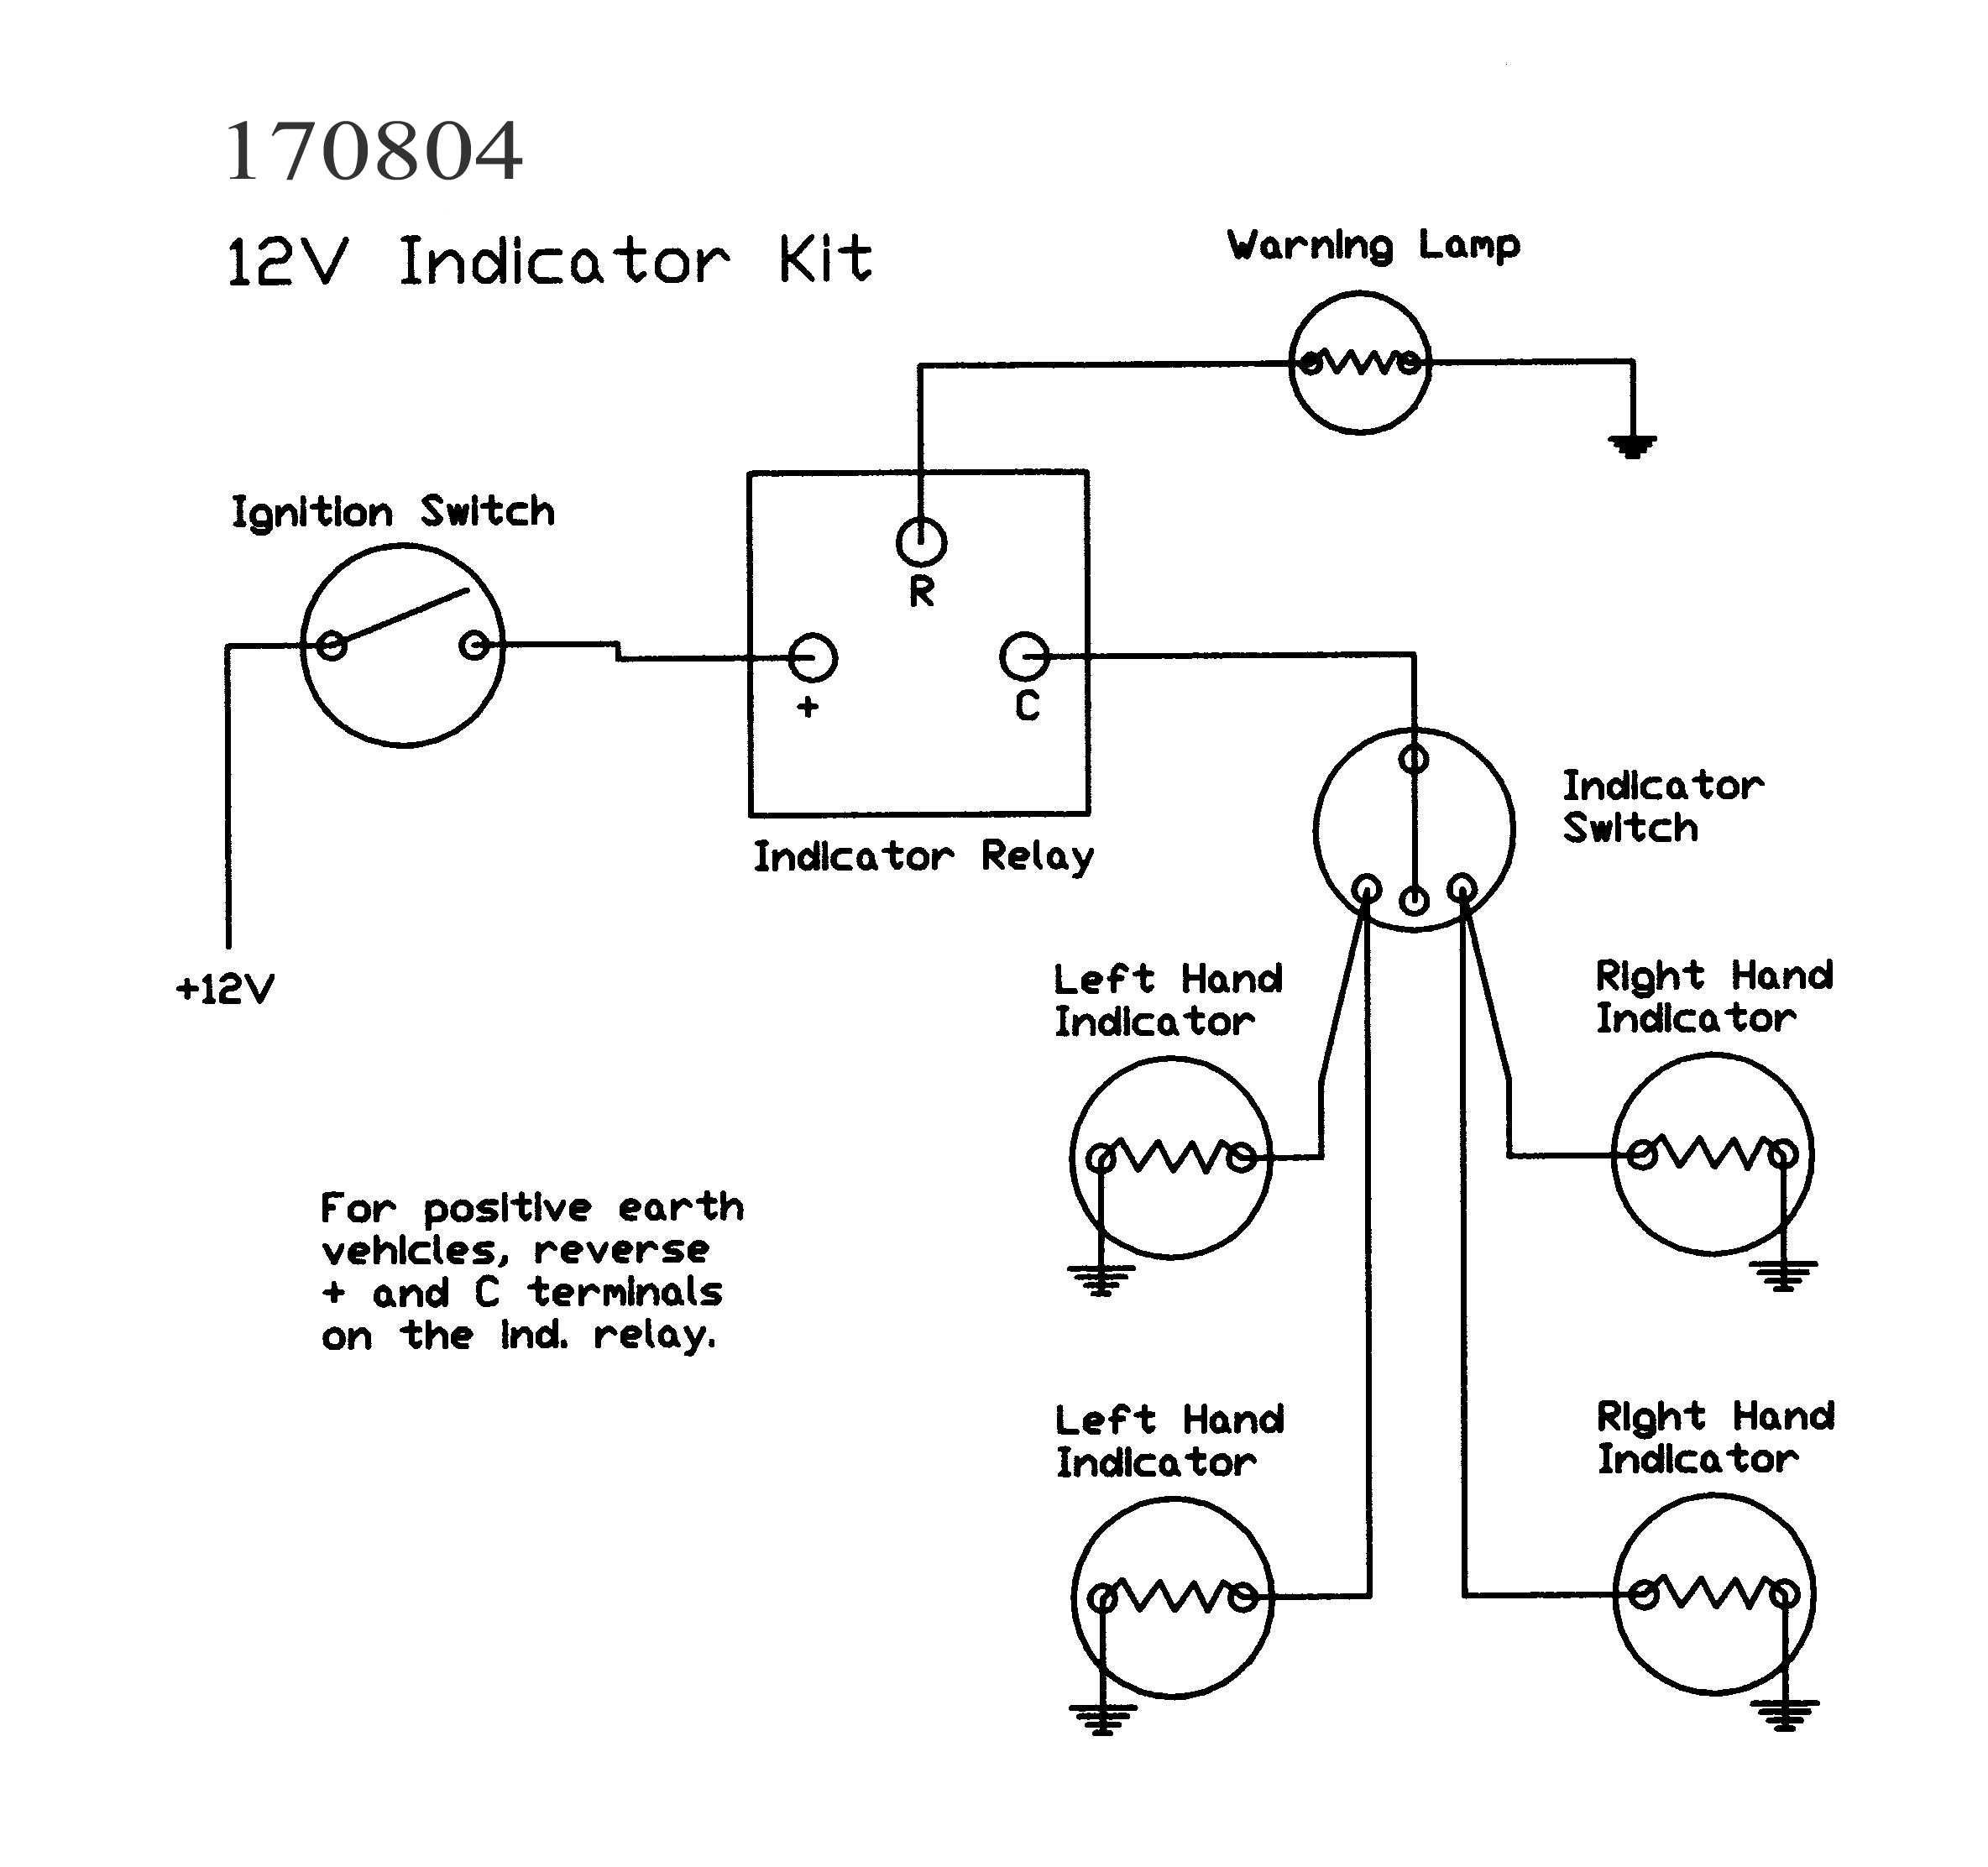 Indicator Kits Without Lamps Wiring A Light Circuit Diagram 170803 170804 12v Schematic